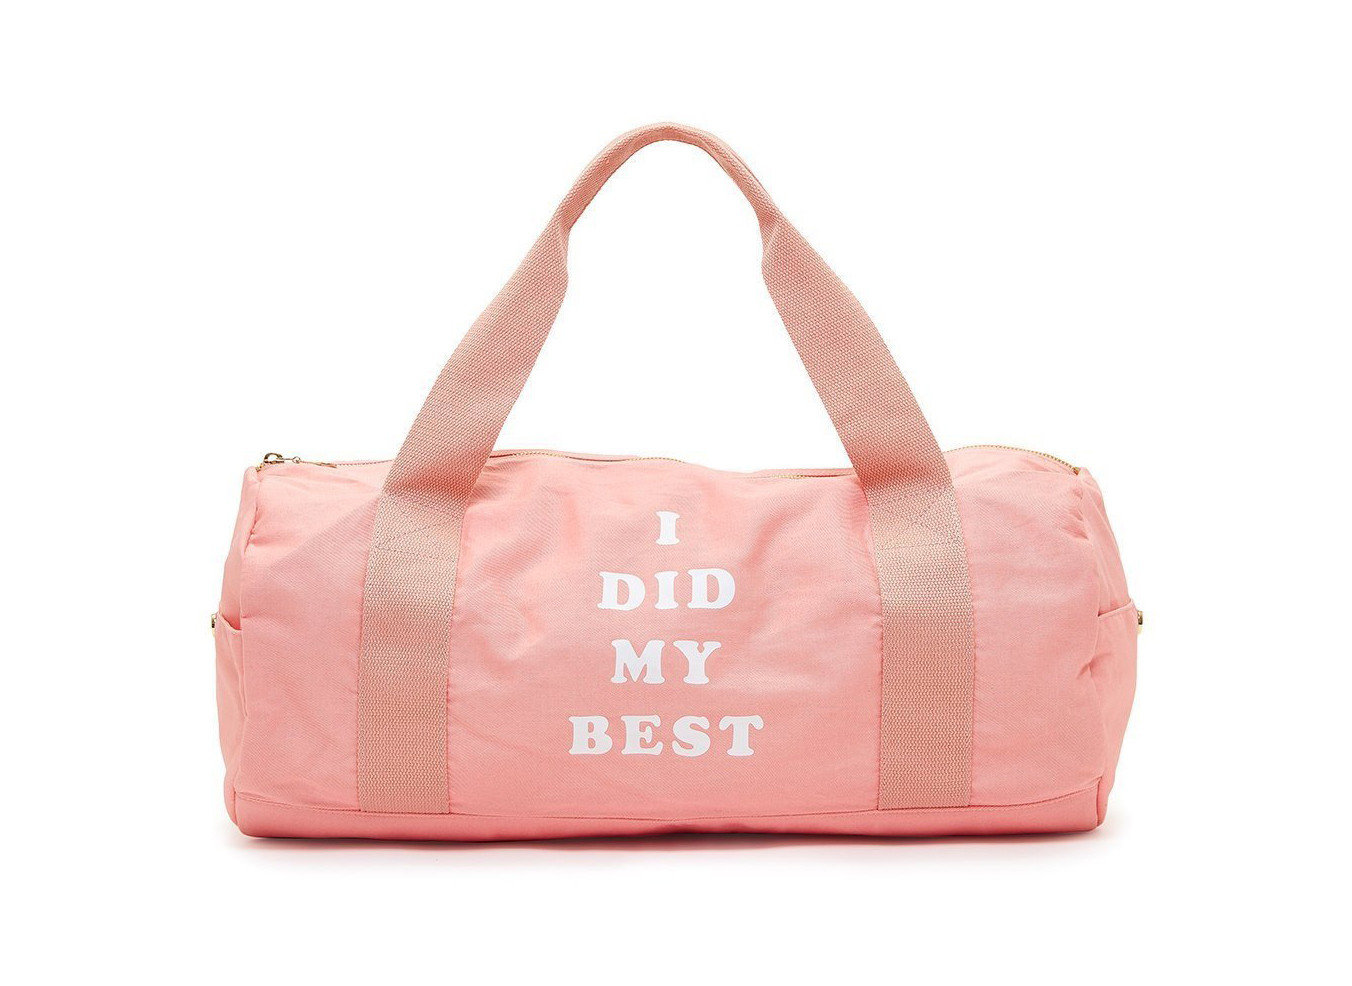 Travel Shop bag pink handbag accessory shoulder bag fashion accessory product peach hand luggage tote bag beige luggage & bags magenta leather